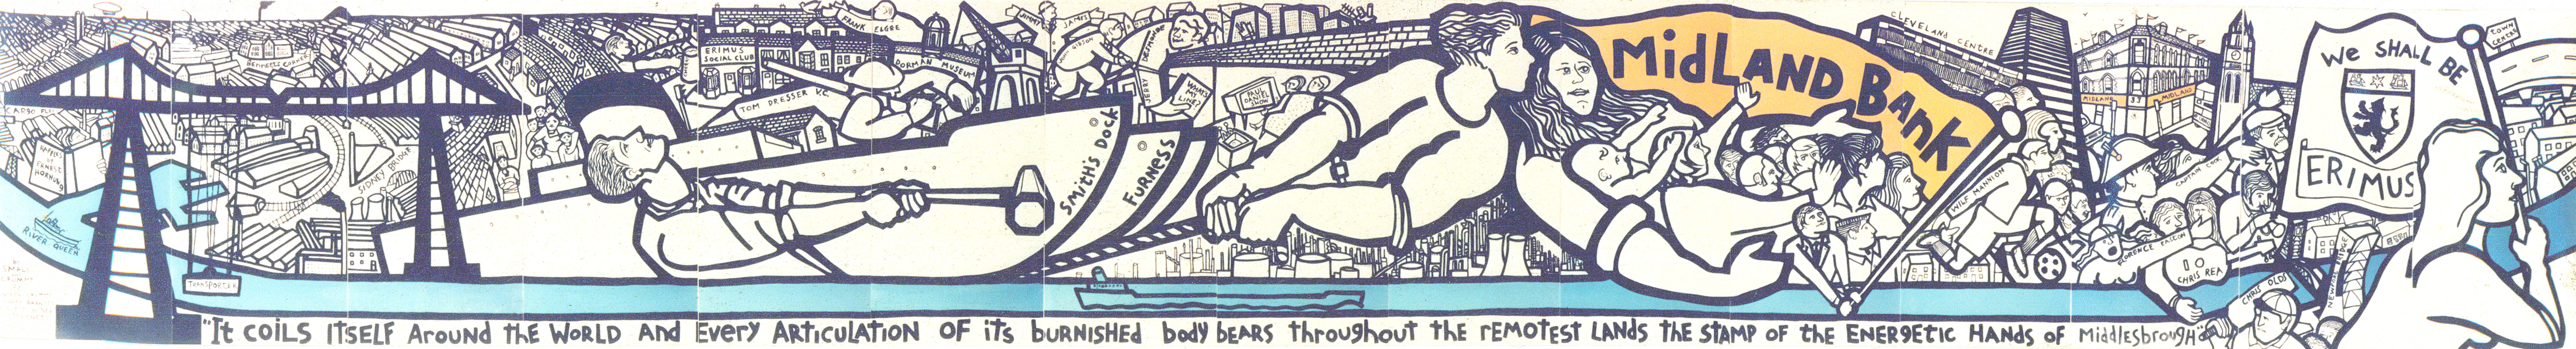 Middlesbrough mural 1988